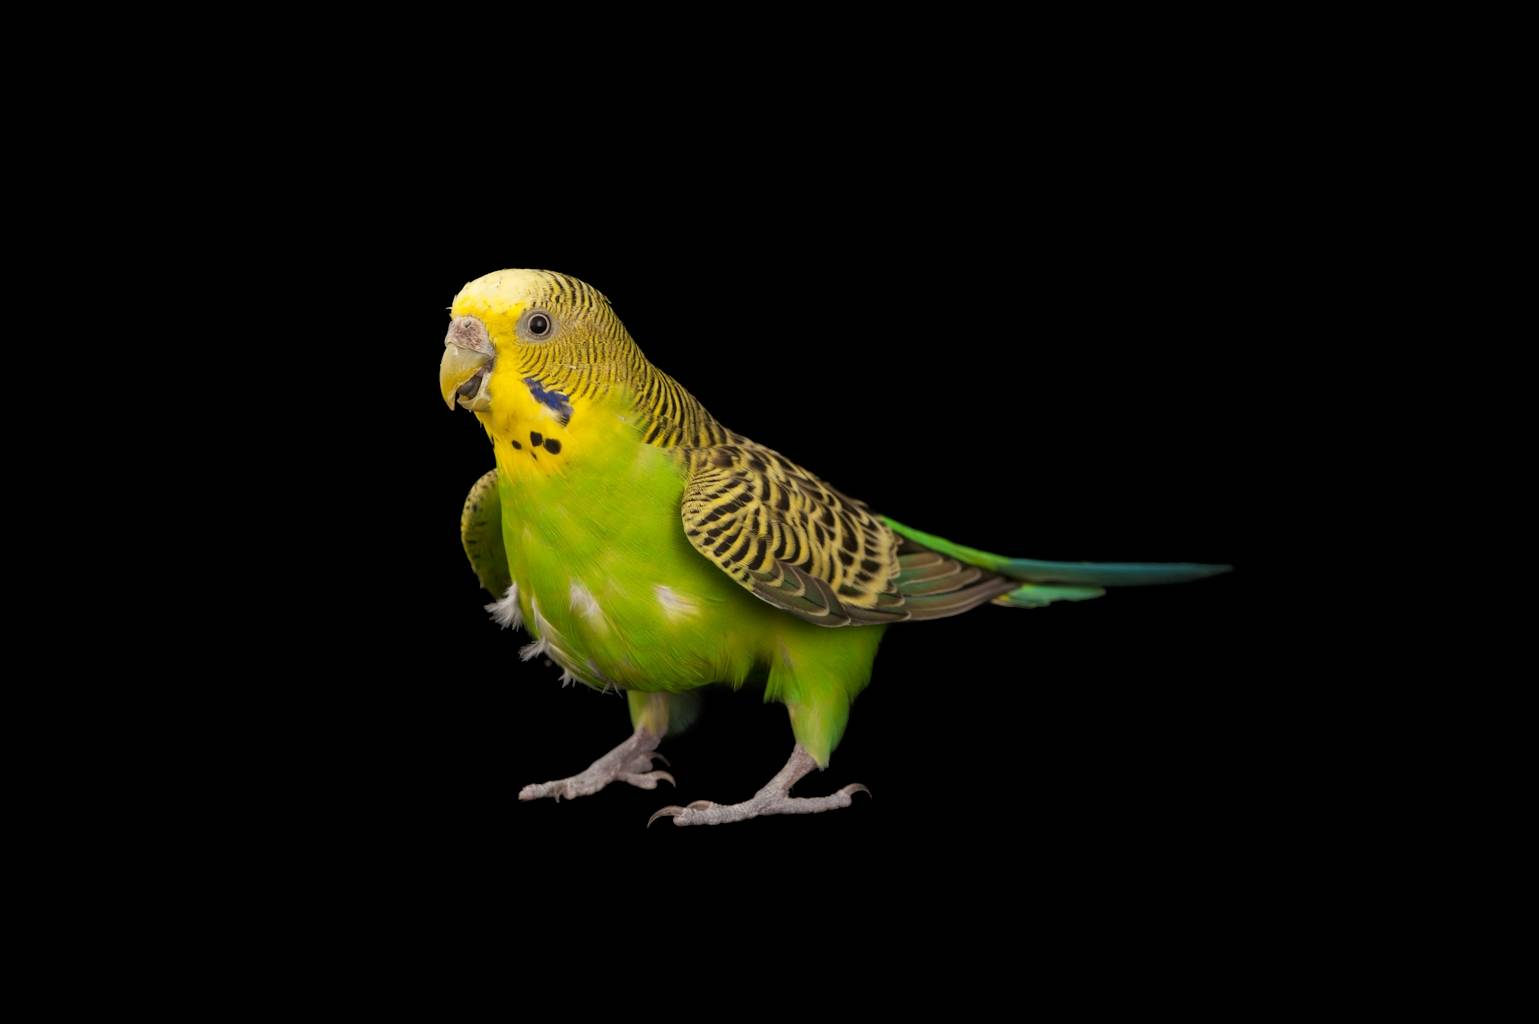 Bush budgie (Melopsittacus undulatus) at Parrots in Paradise, a bird attraction in Glass House Mountains, Queensland.